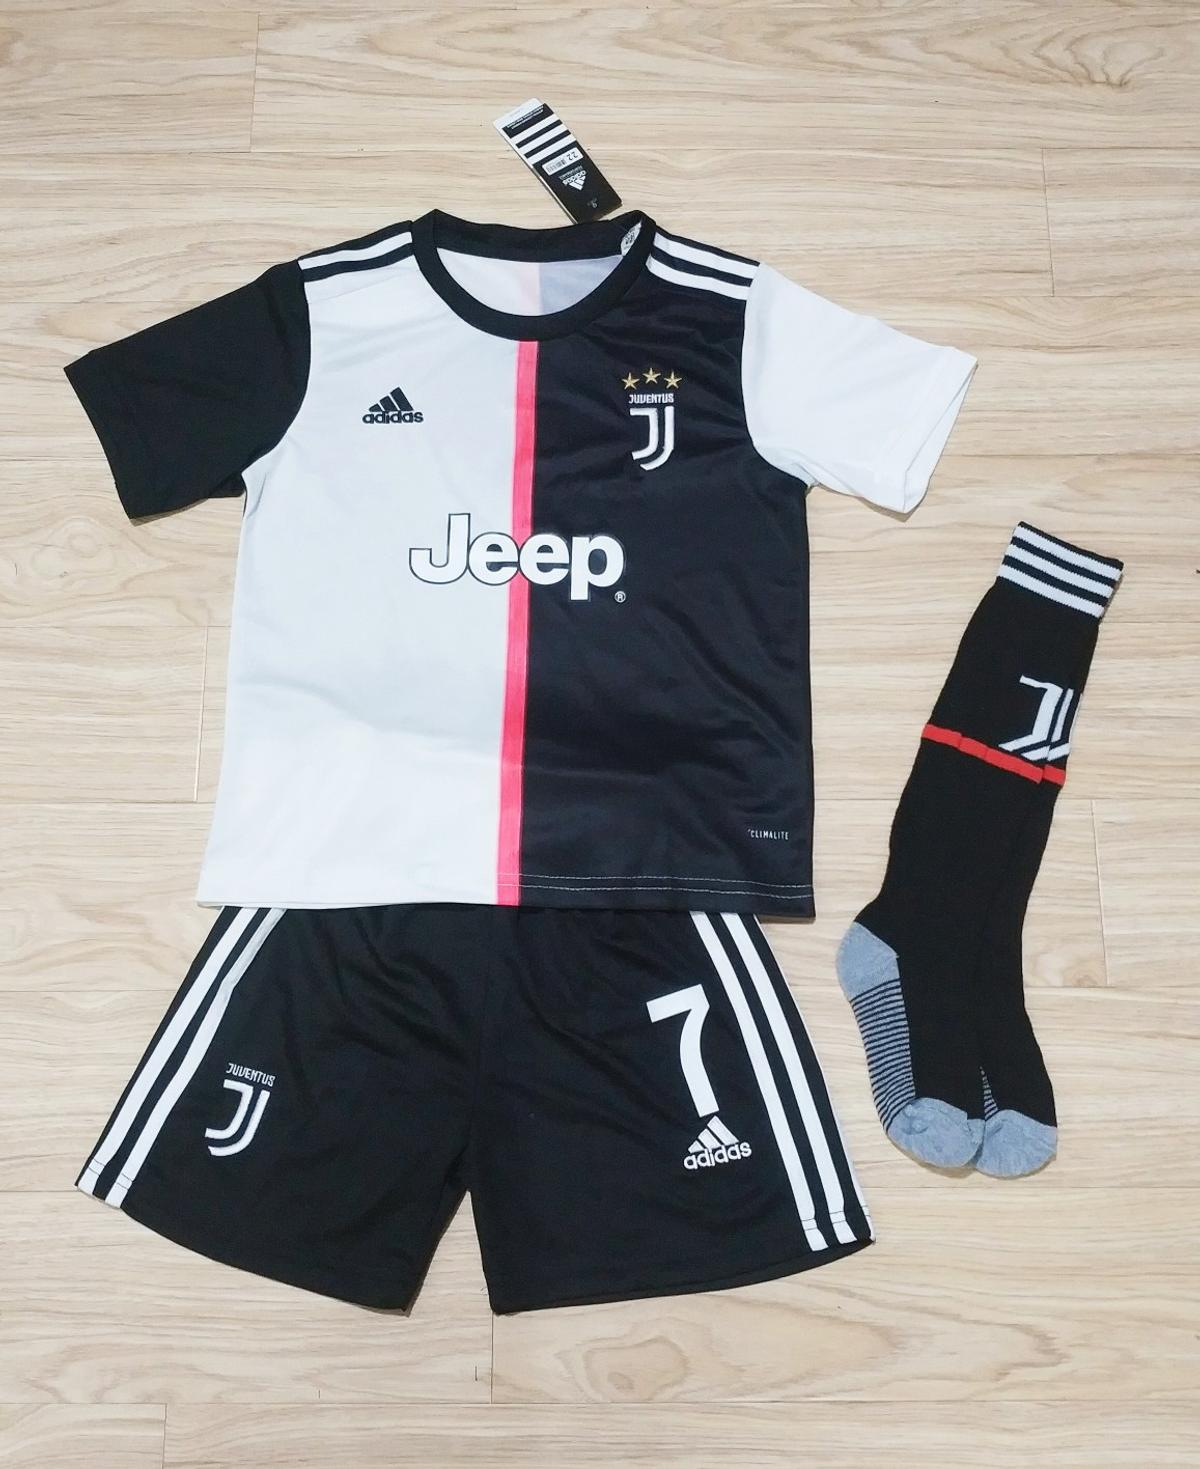 buy online 17374 6bece Kids Juventus Football Kit Ronaldo Shirt